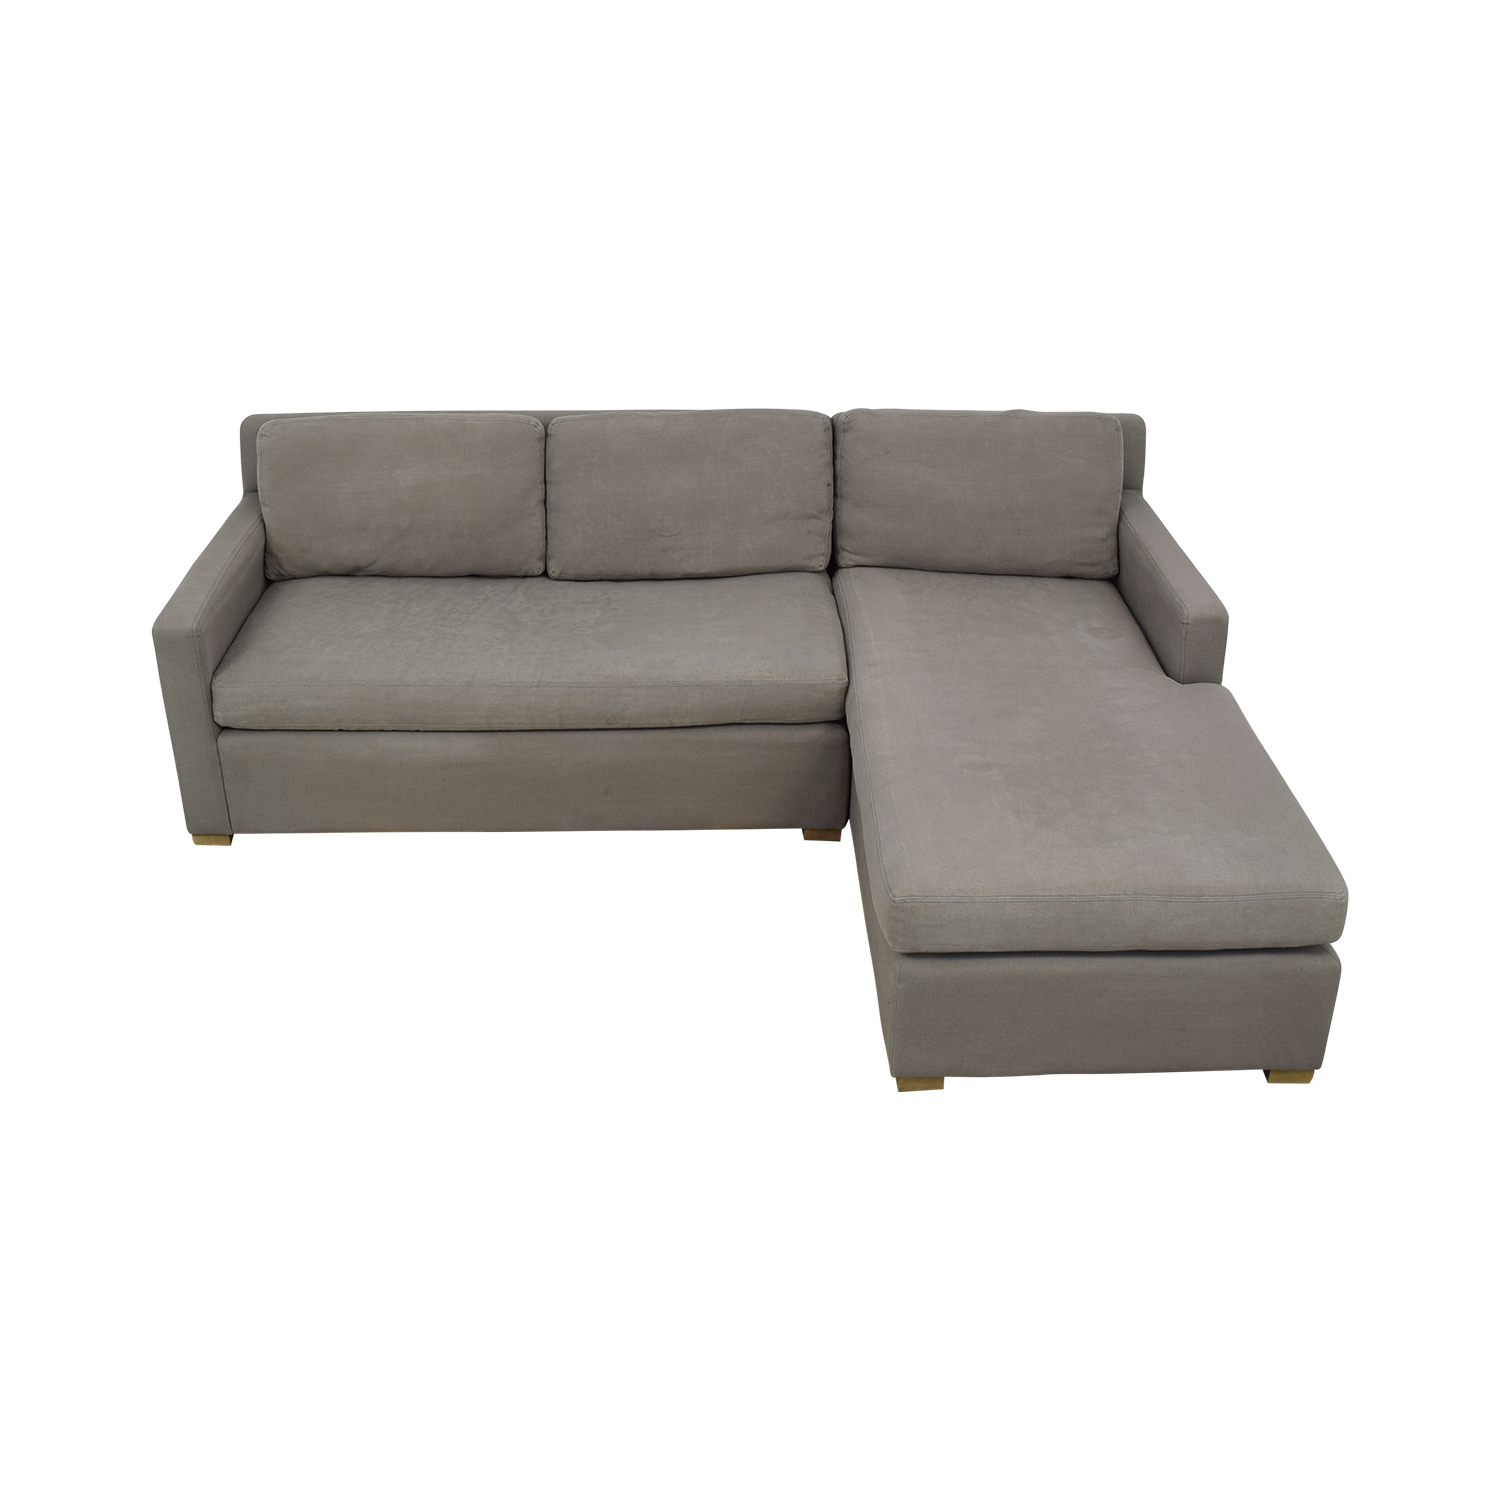 Restoration Hardware Restoration Hardware Belgian Track Arm Right-Arm Chaise Sectional second hand